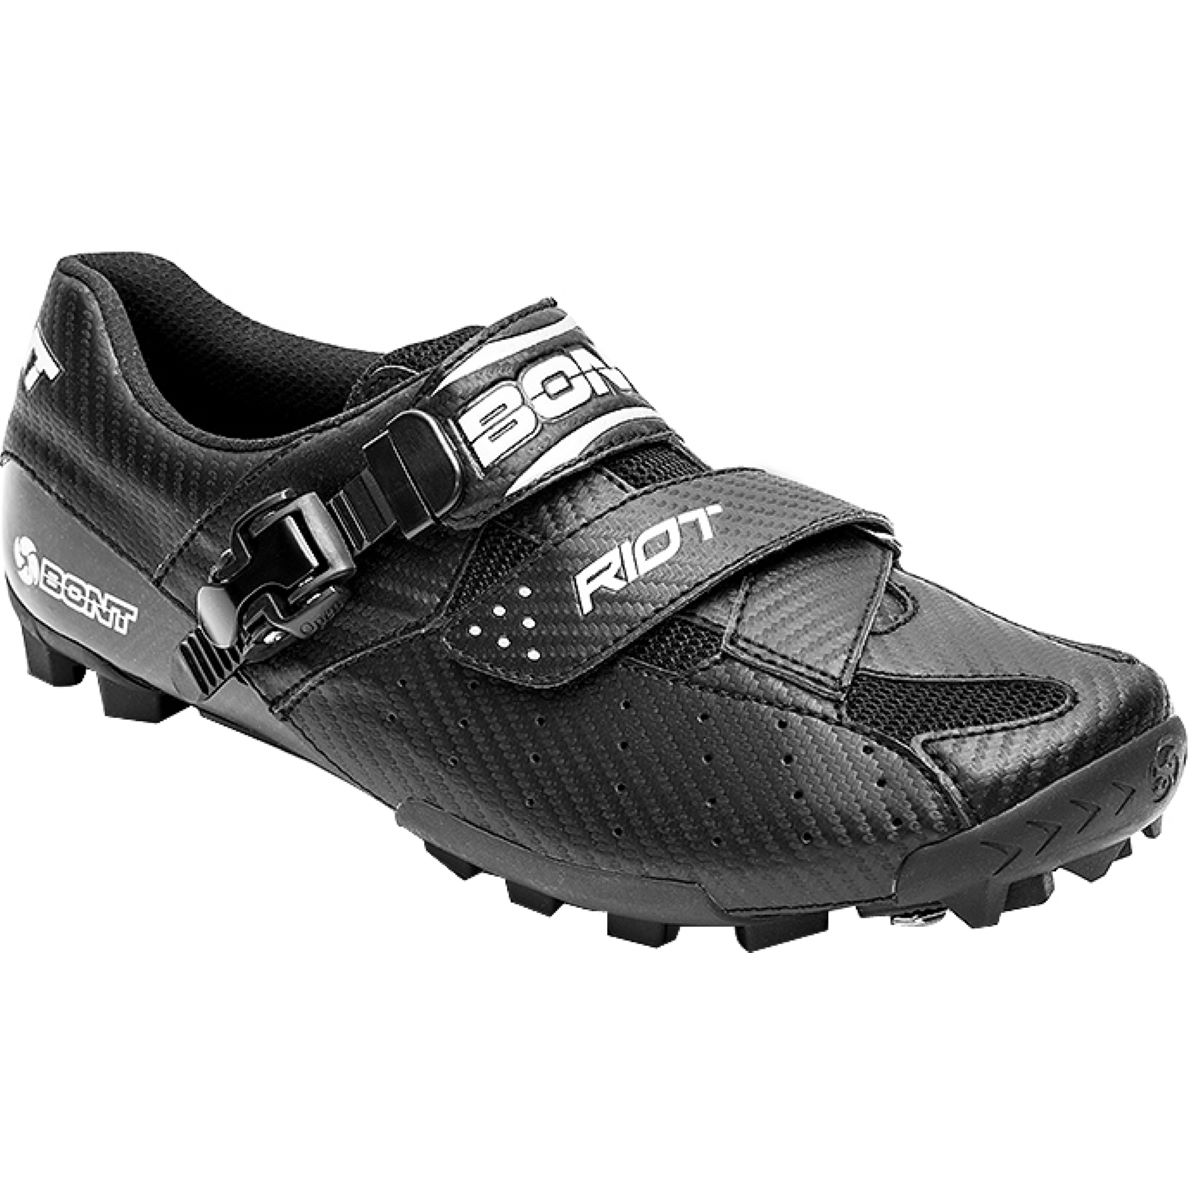 Bont Riot MTB Shoe Offroad Shoes